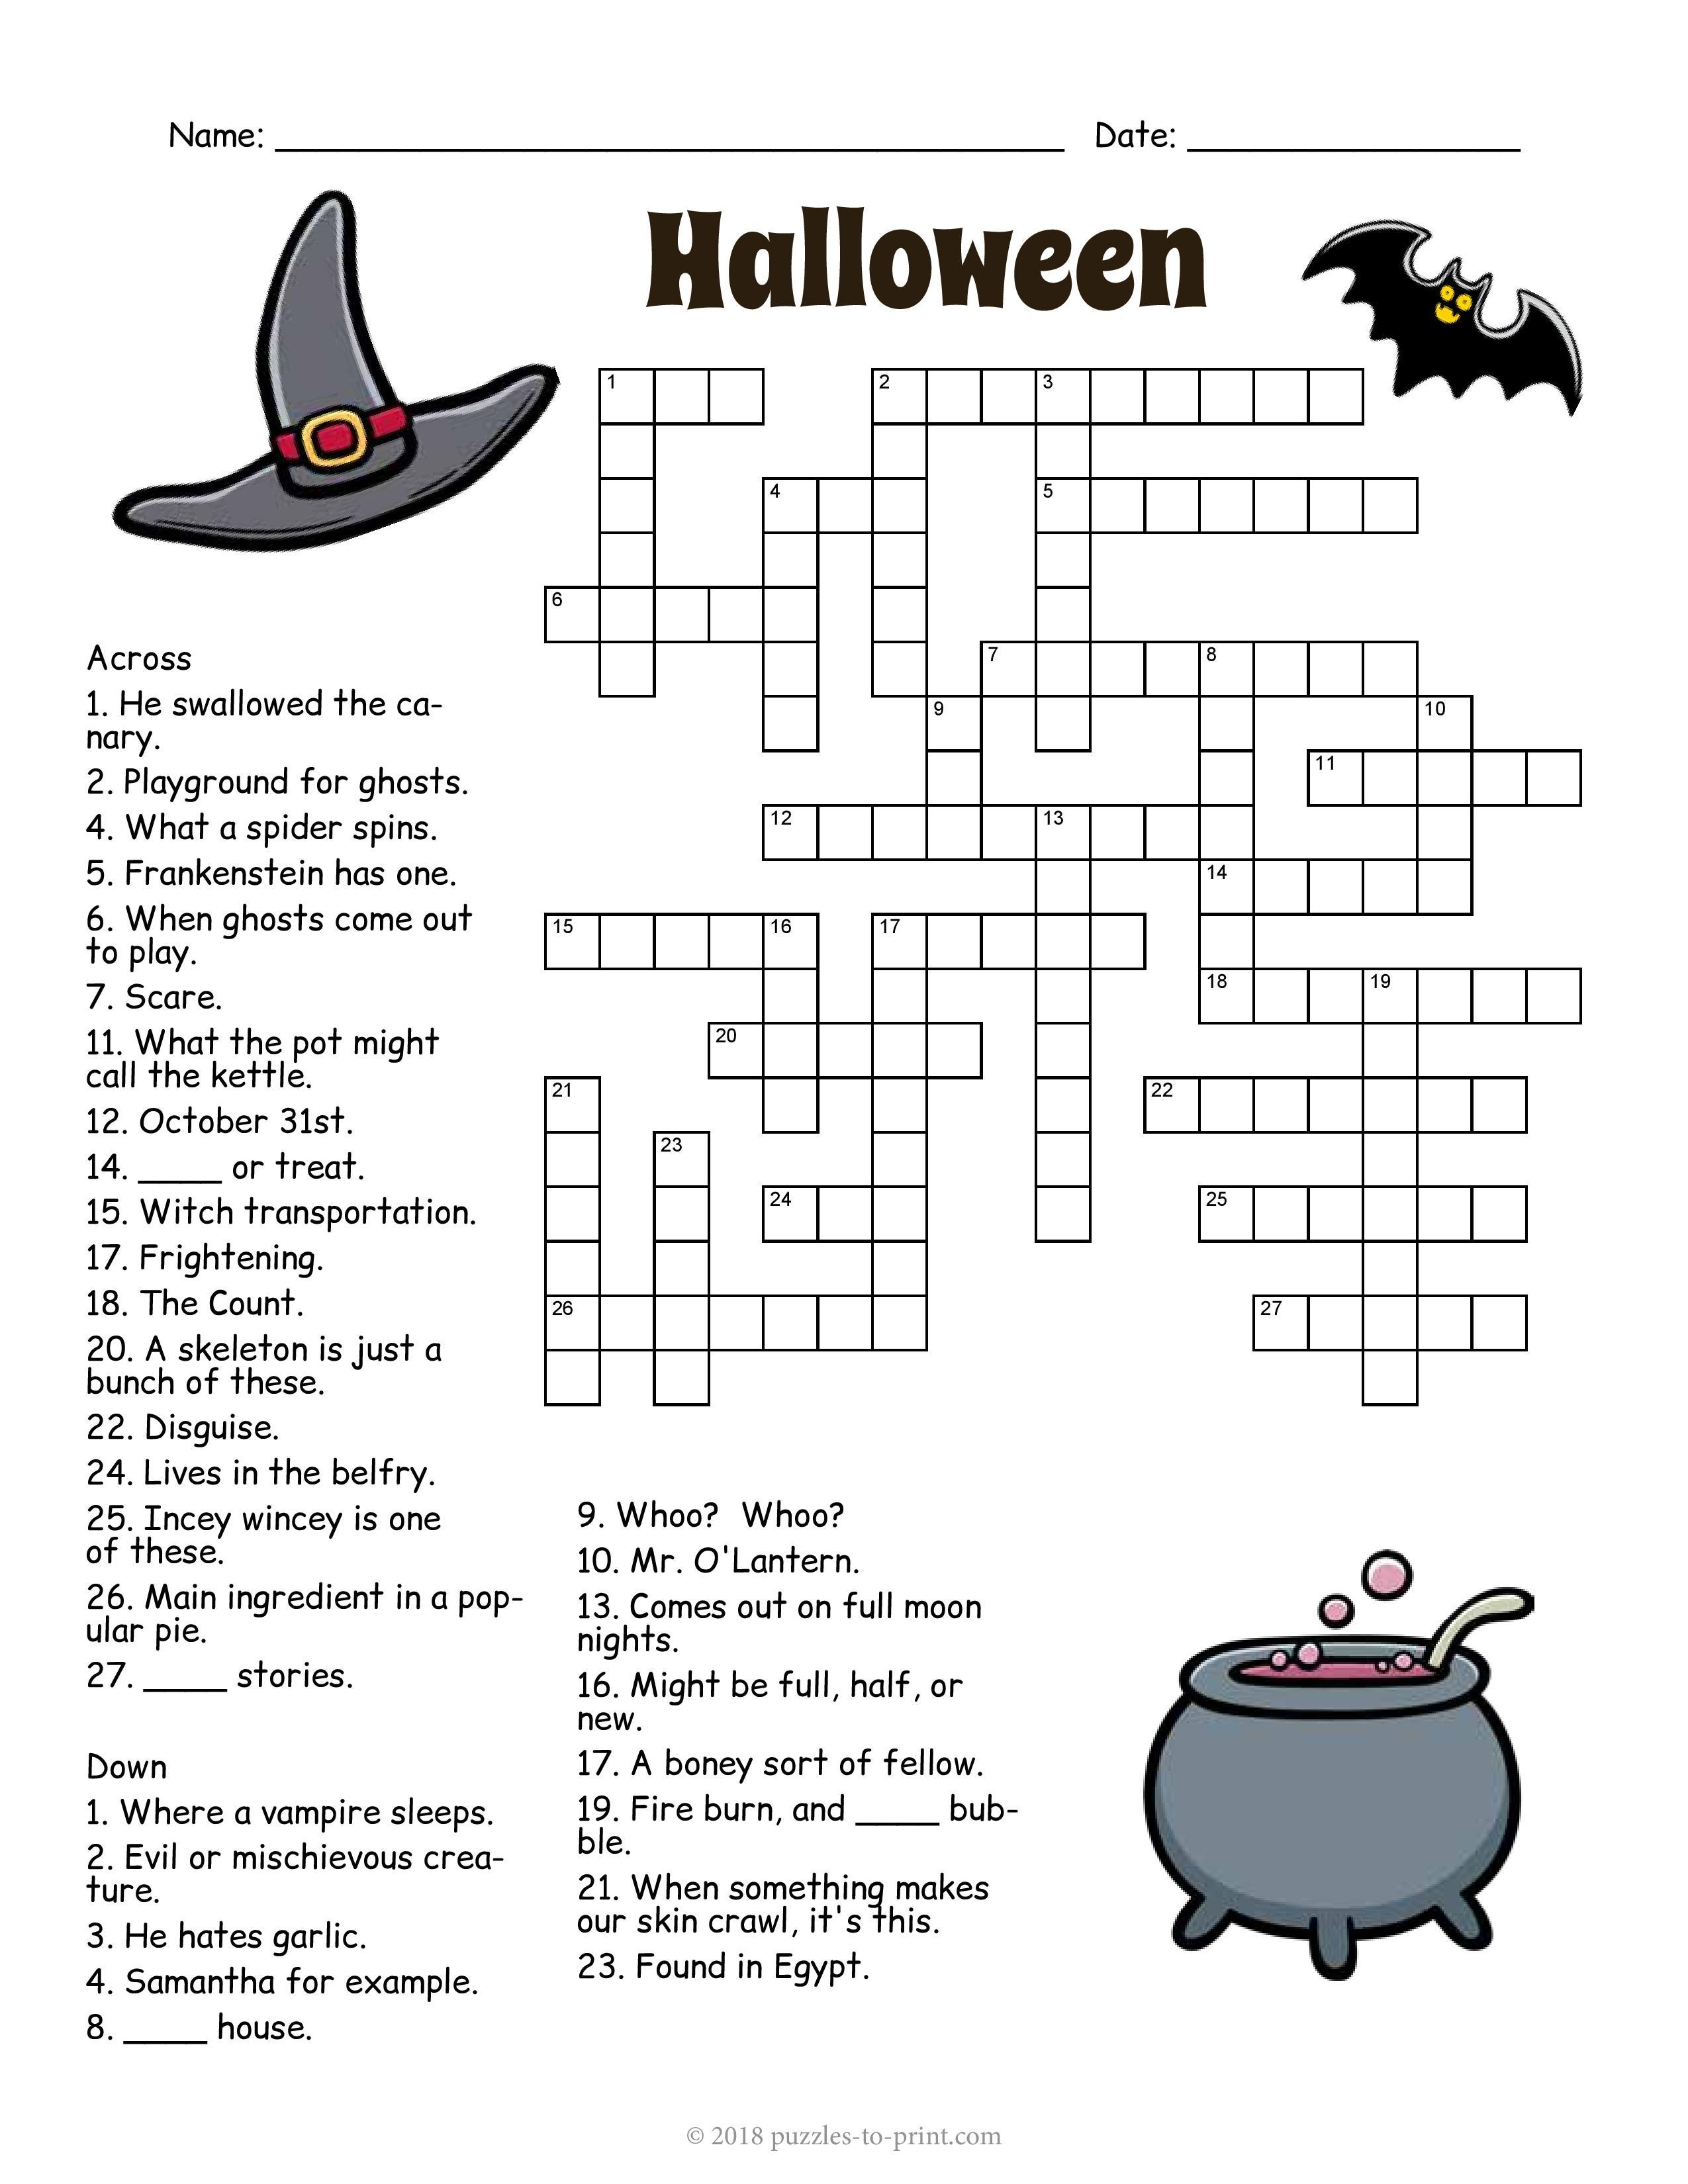 Grammar corner Halloween Crossword